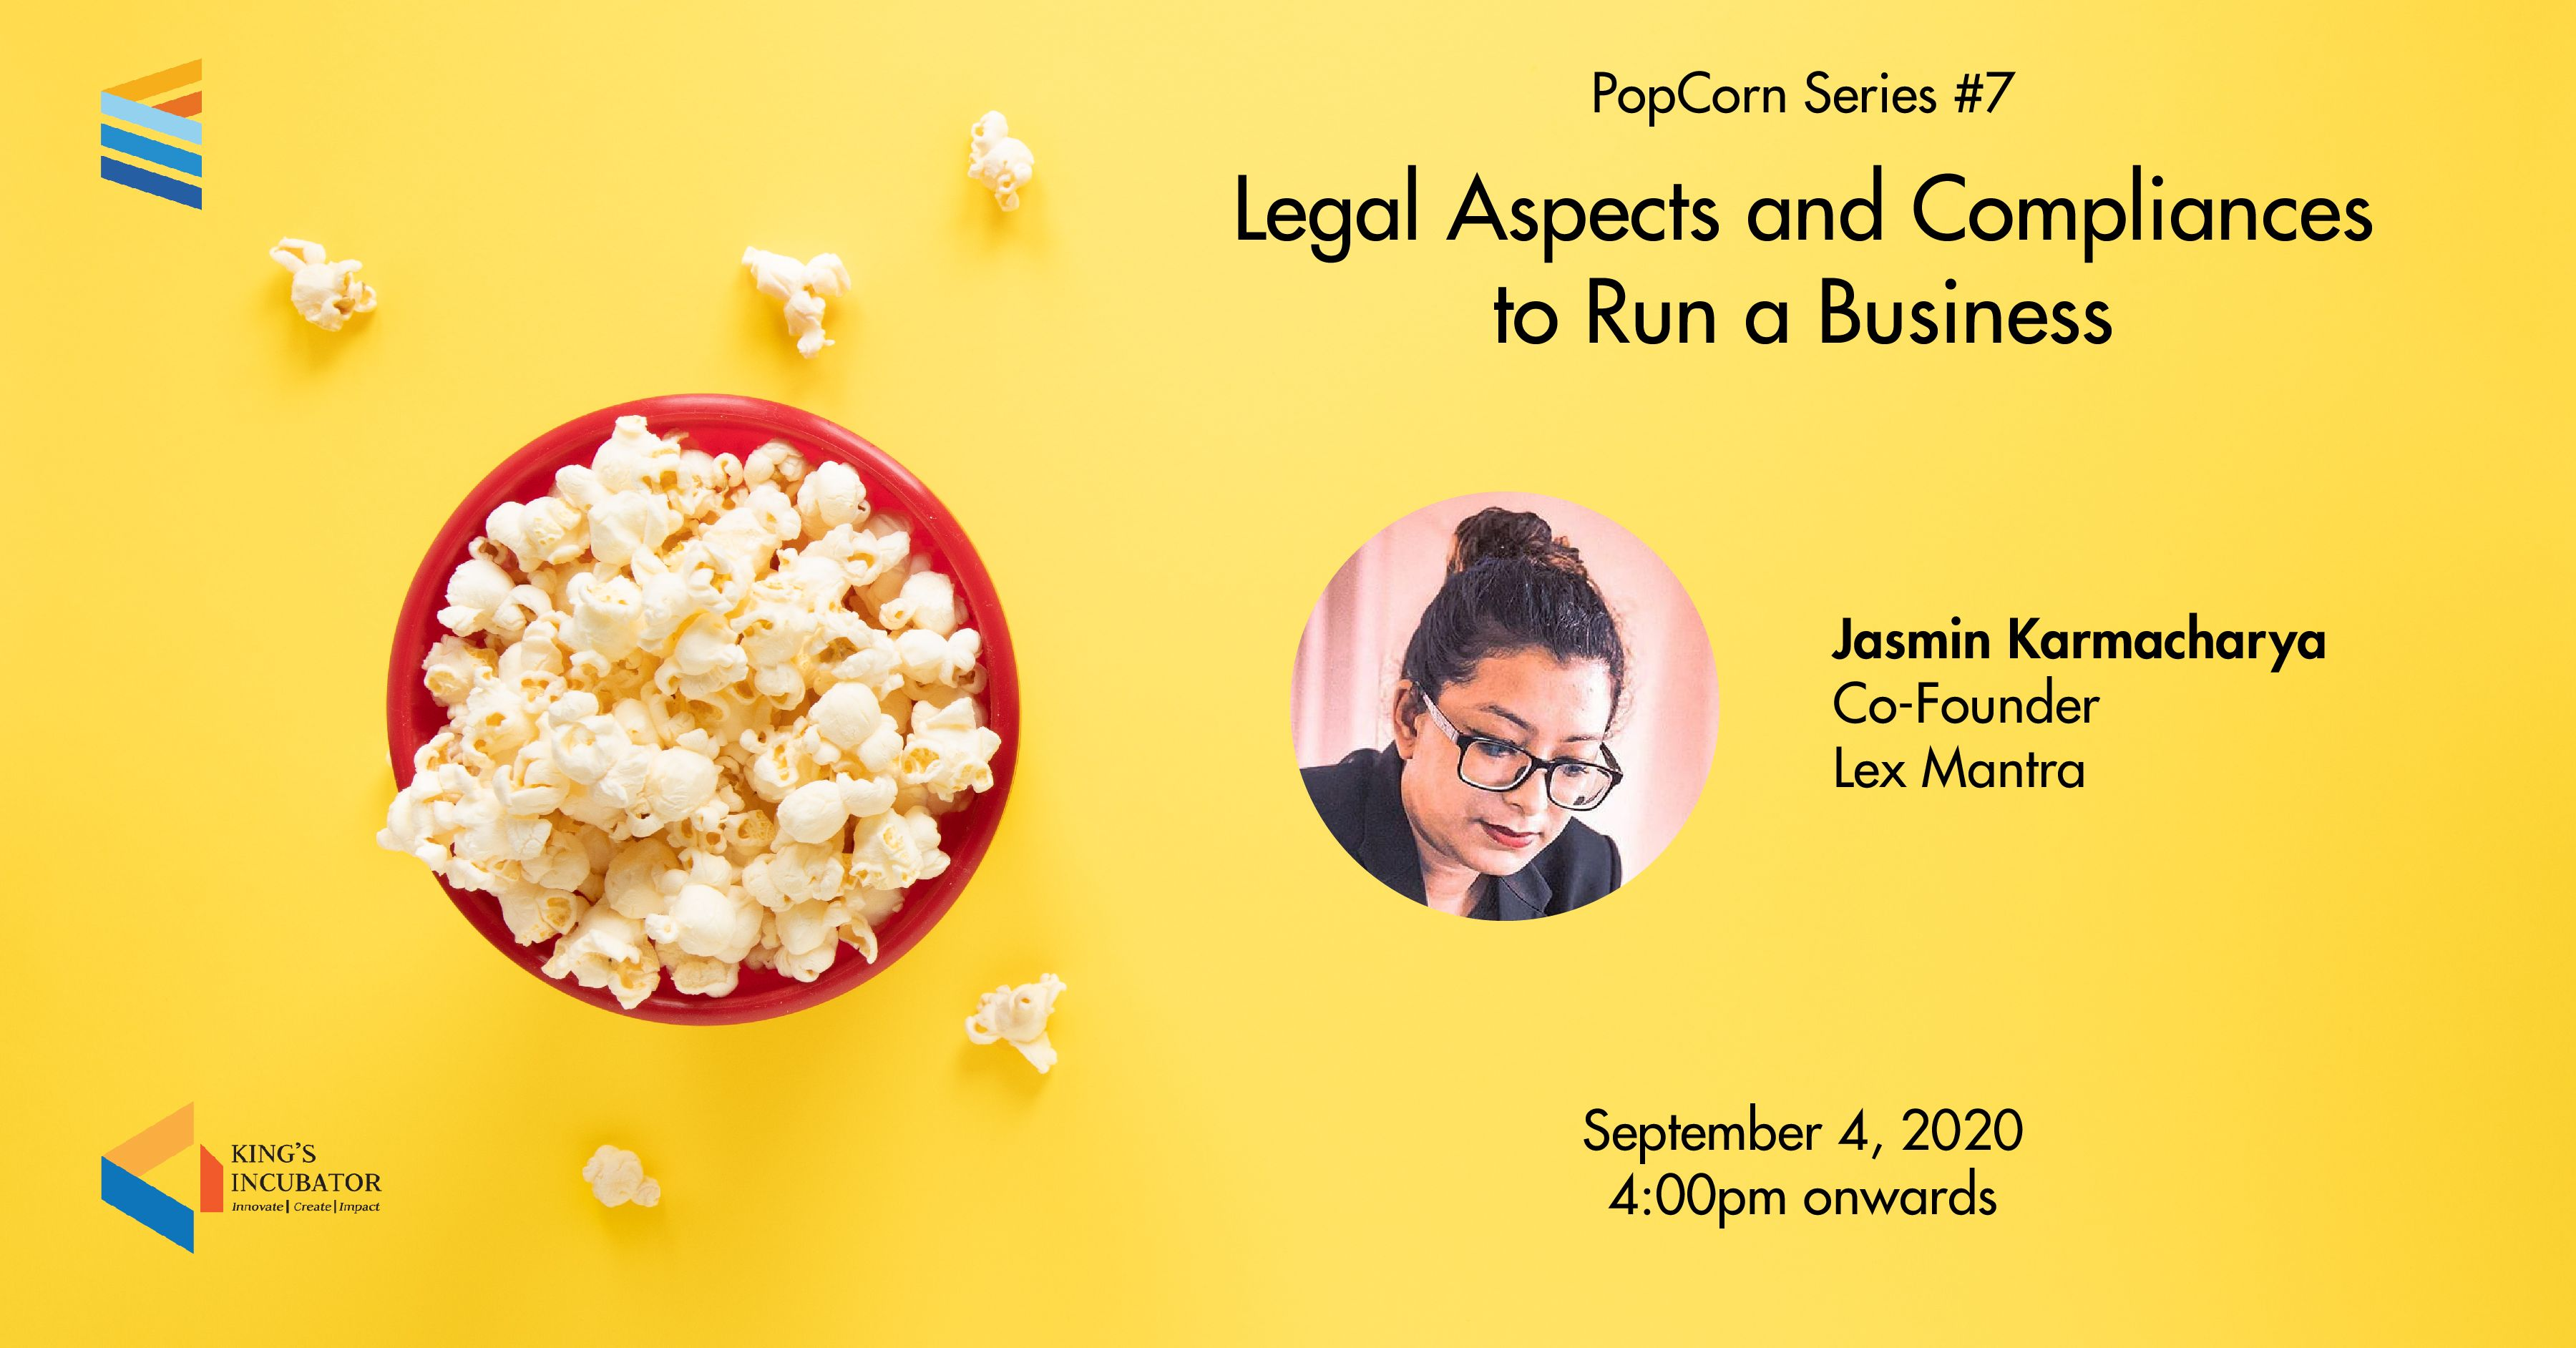 PopCorn Series 7: Legal Aspects and Compliances to Run a Business